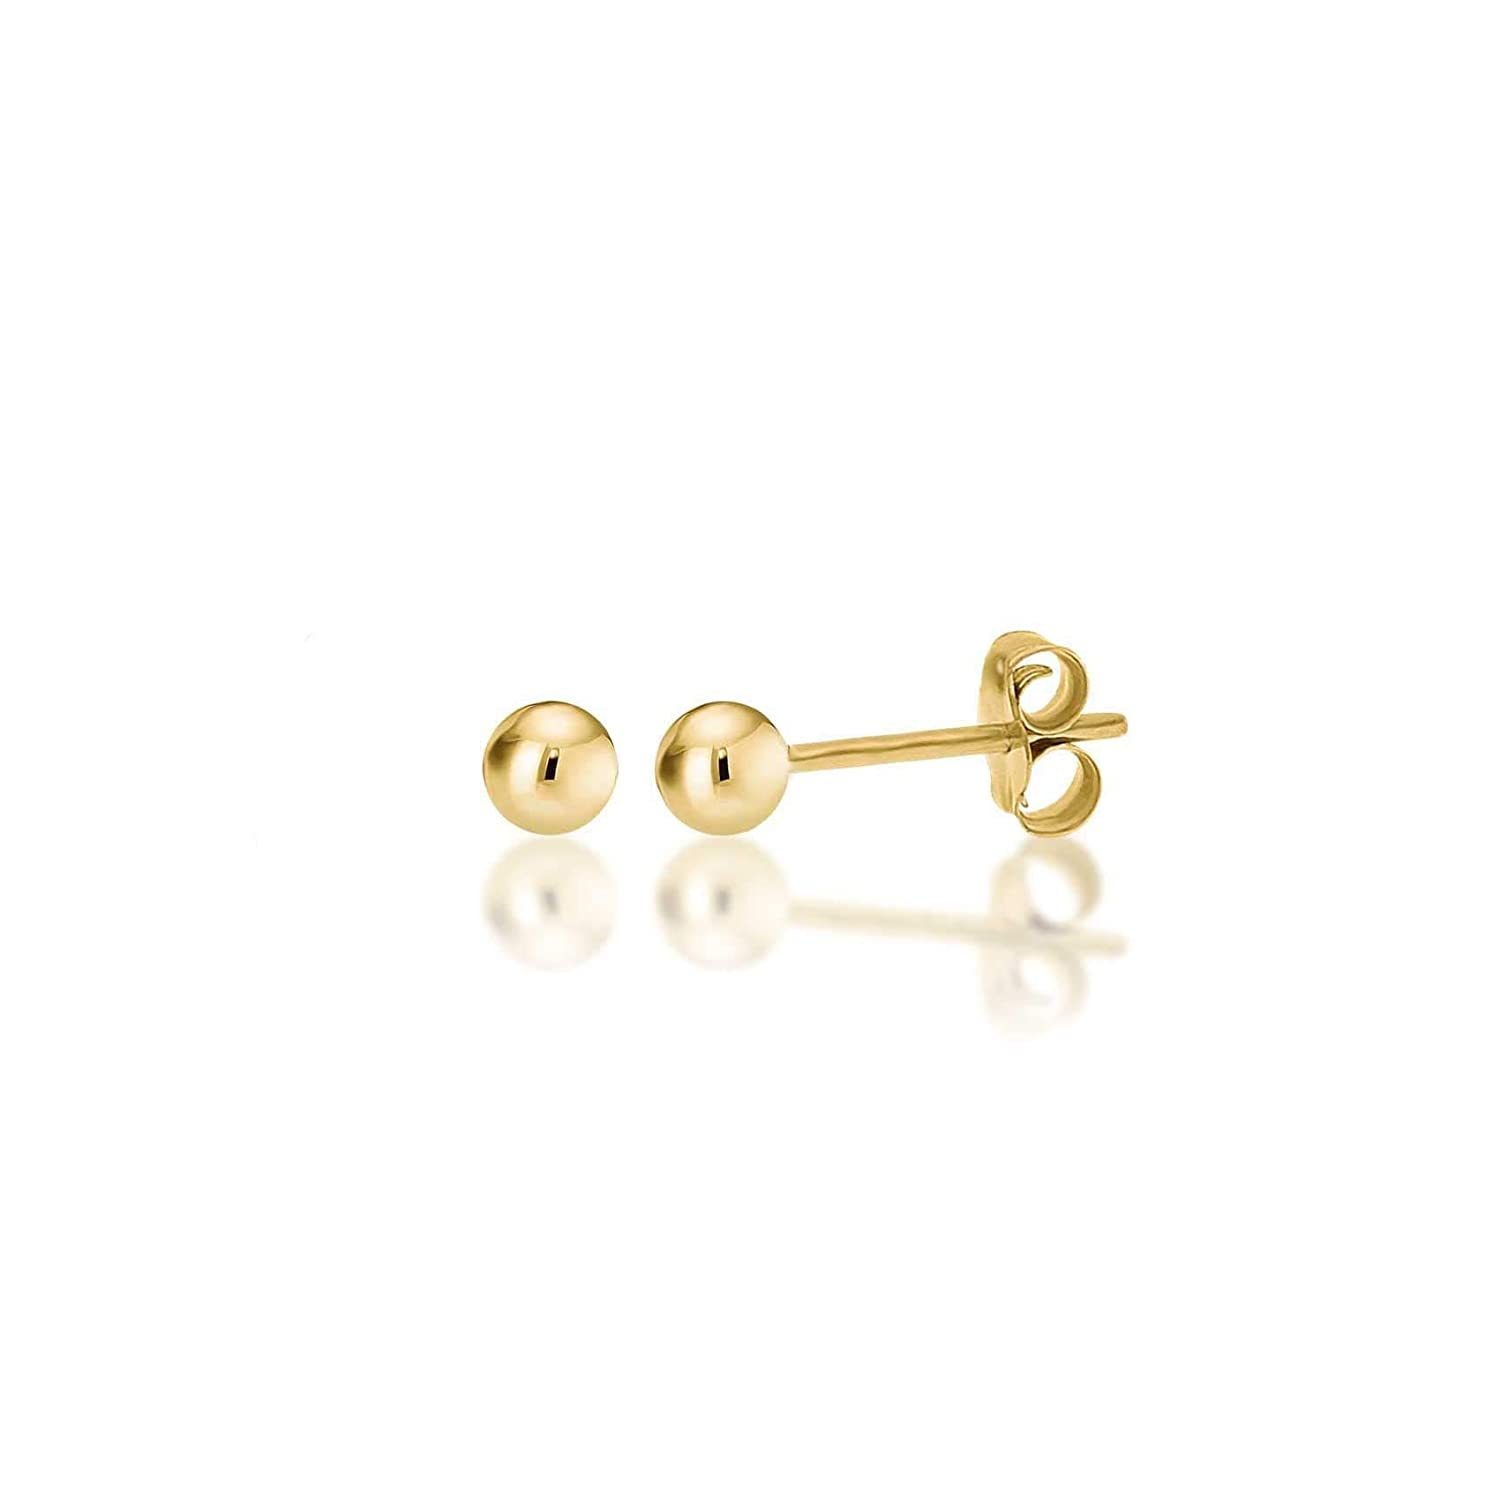 c6afeedb9 Amazon.com: 14K Yellow Gold Filled Round Ball Stud Earrings Pushback 3mm:  Jewelry